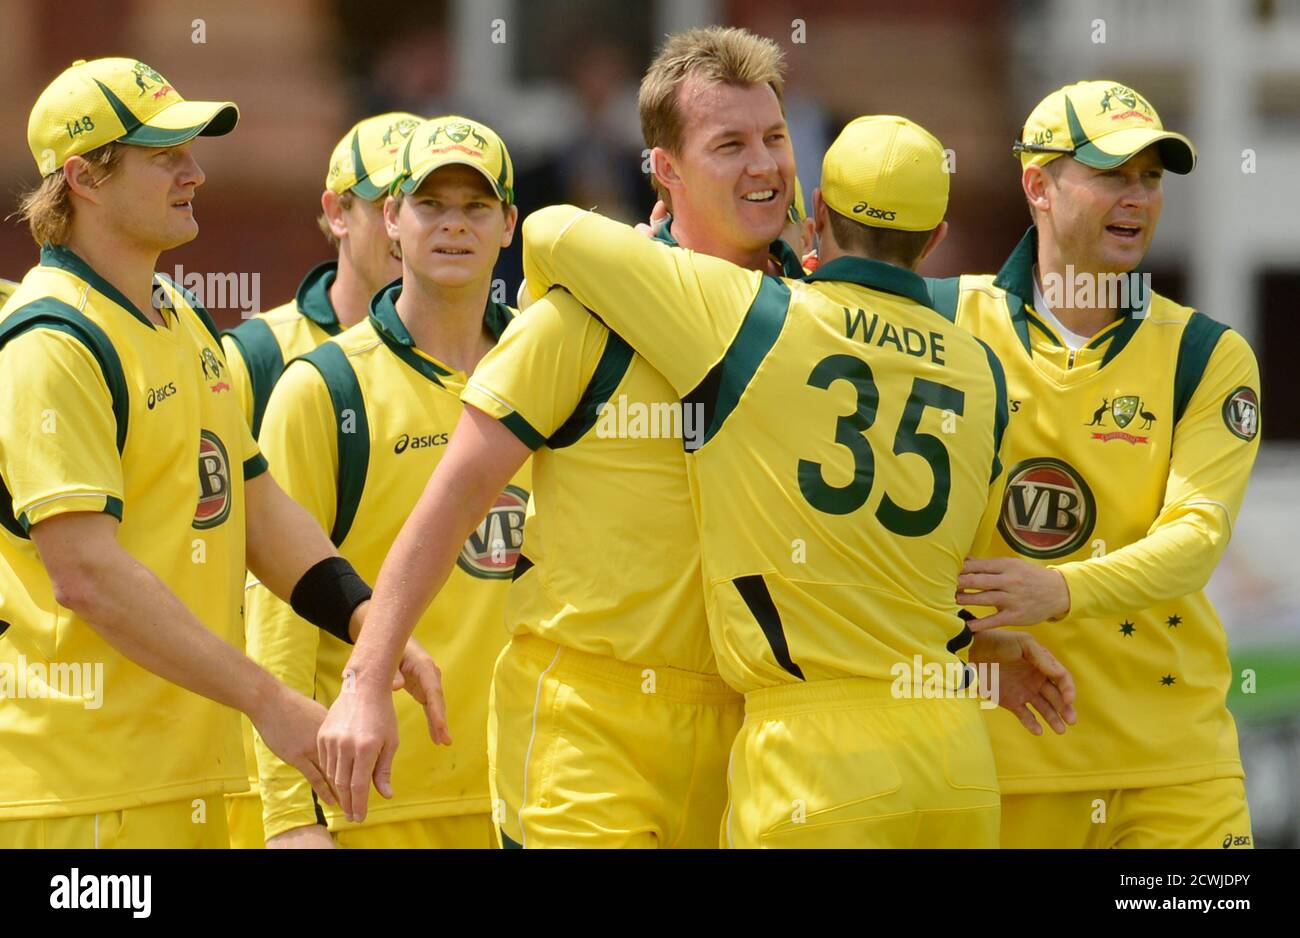 Australia's Brett Lee (4th L) is congratulated by team-mates including Michael Clarke (right) after dismissing England's Ian Bell during the first one-day international at Lord's cricket ground in London June 29, 2012.   REUTERS/Philip Brown (BRITAIN - Tags: SPORT CRICKET) Banque D'Images